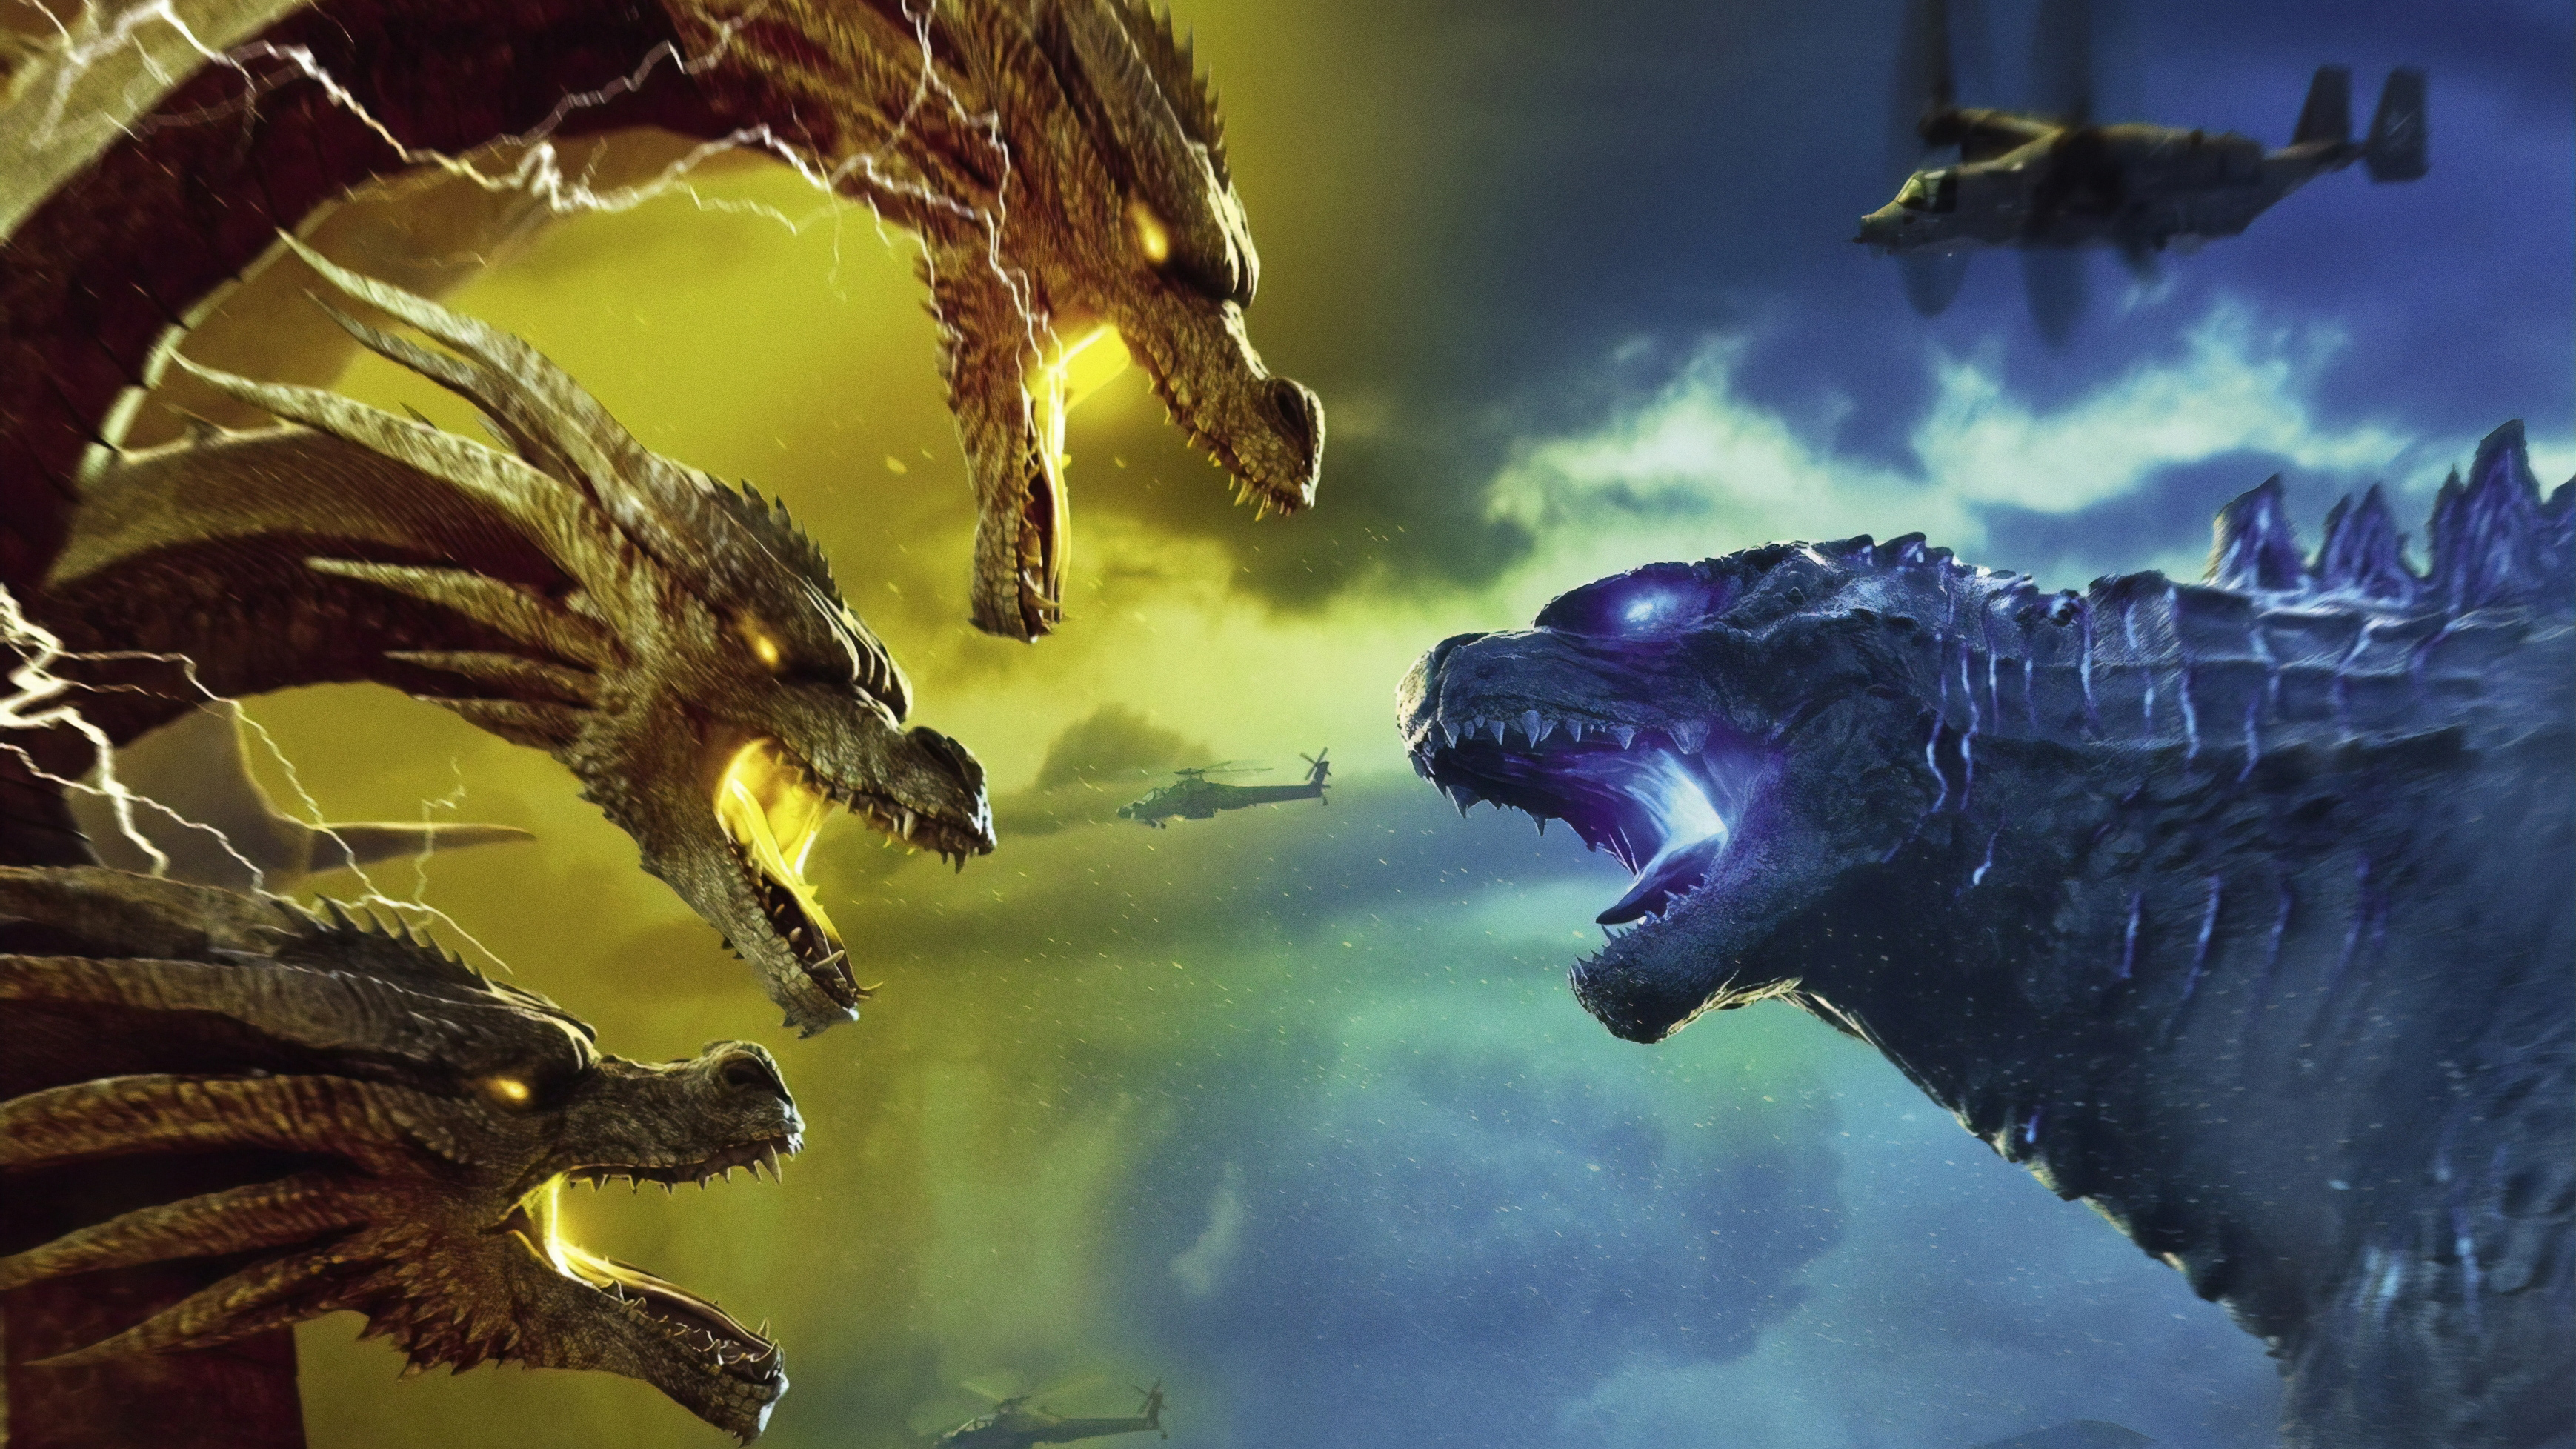 Godzilla King Of The Monsters 4k Hd Movies 4k Wallpapers Images